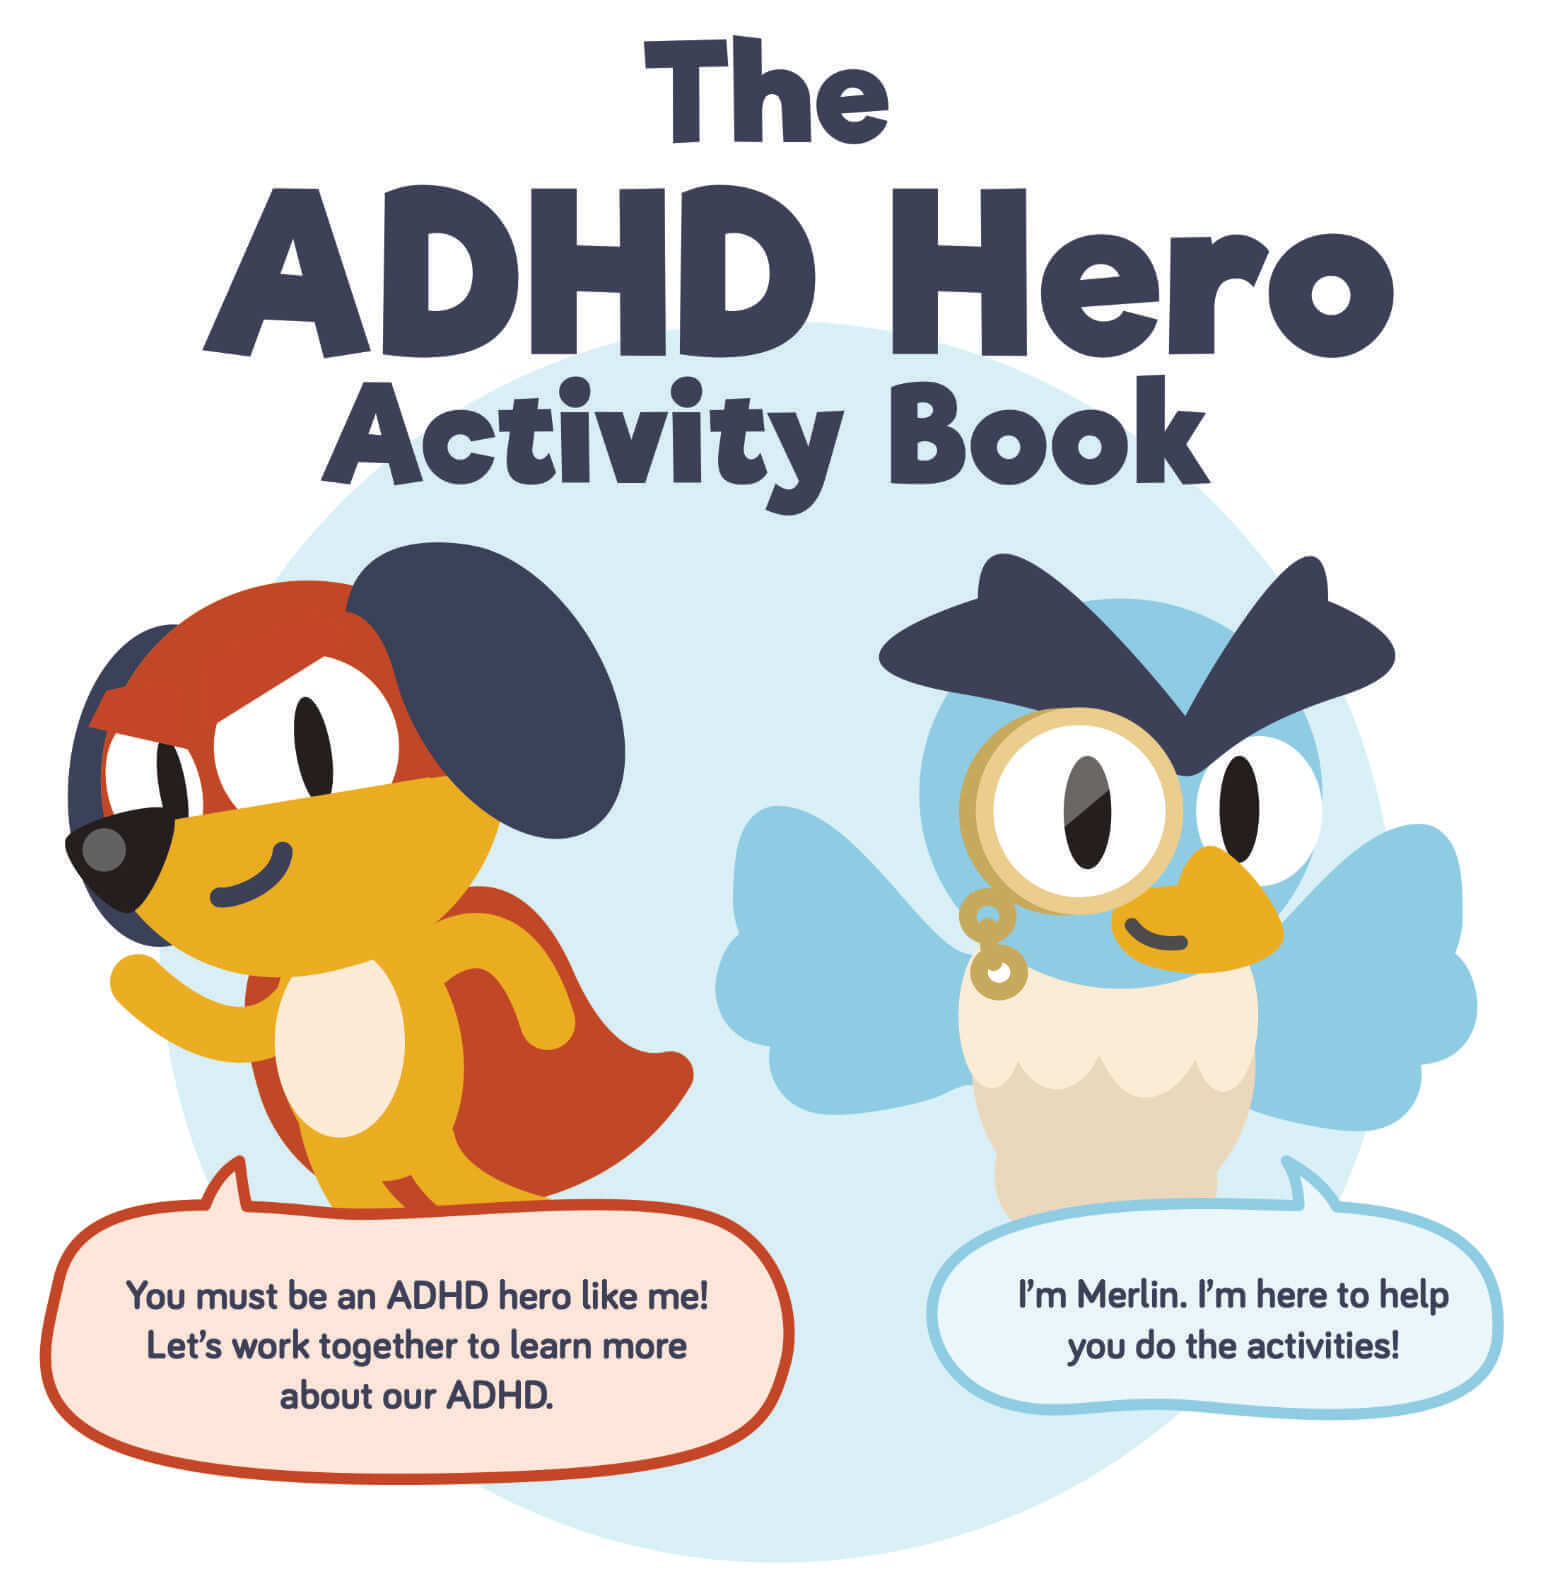 Evaluation of 'ADHD Hero Activity Book' paper published in Design For Health